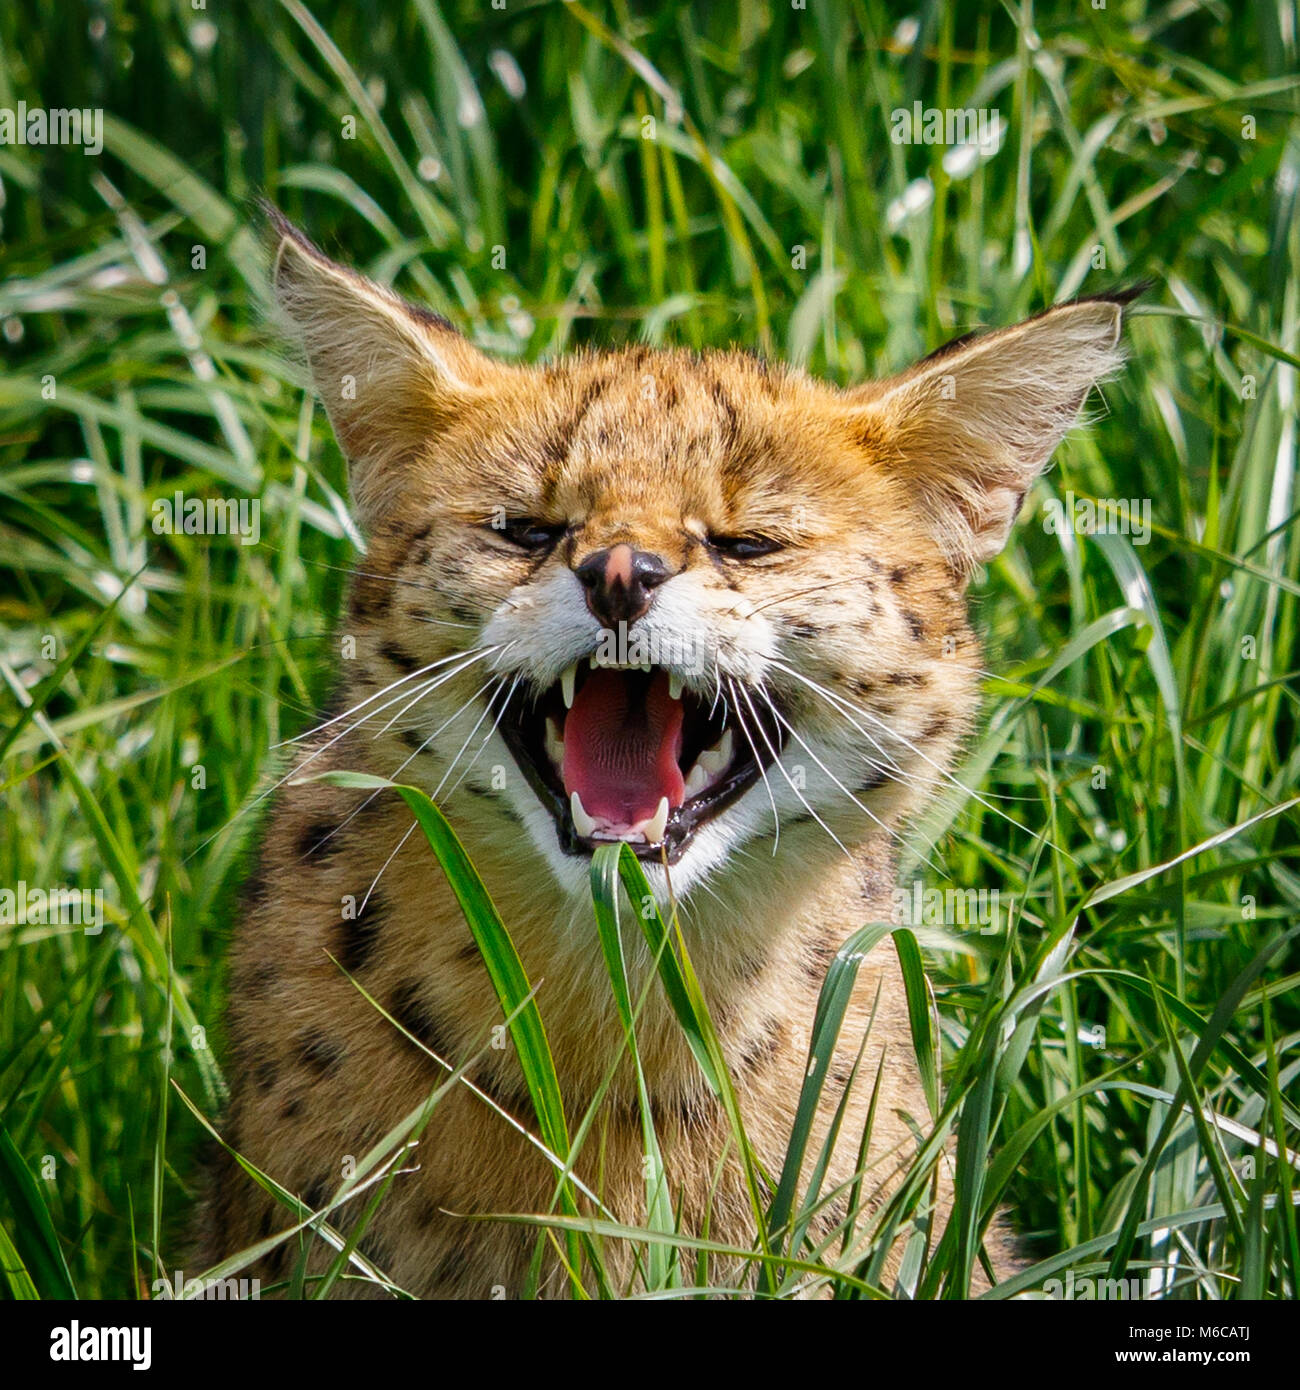 Bad tempered Serval snarling in grass - Stock Image